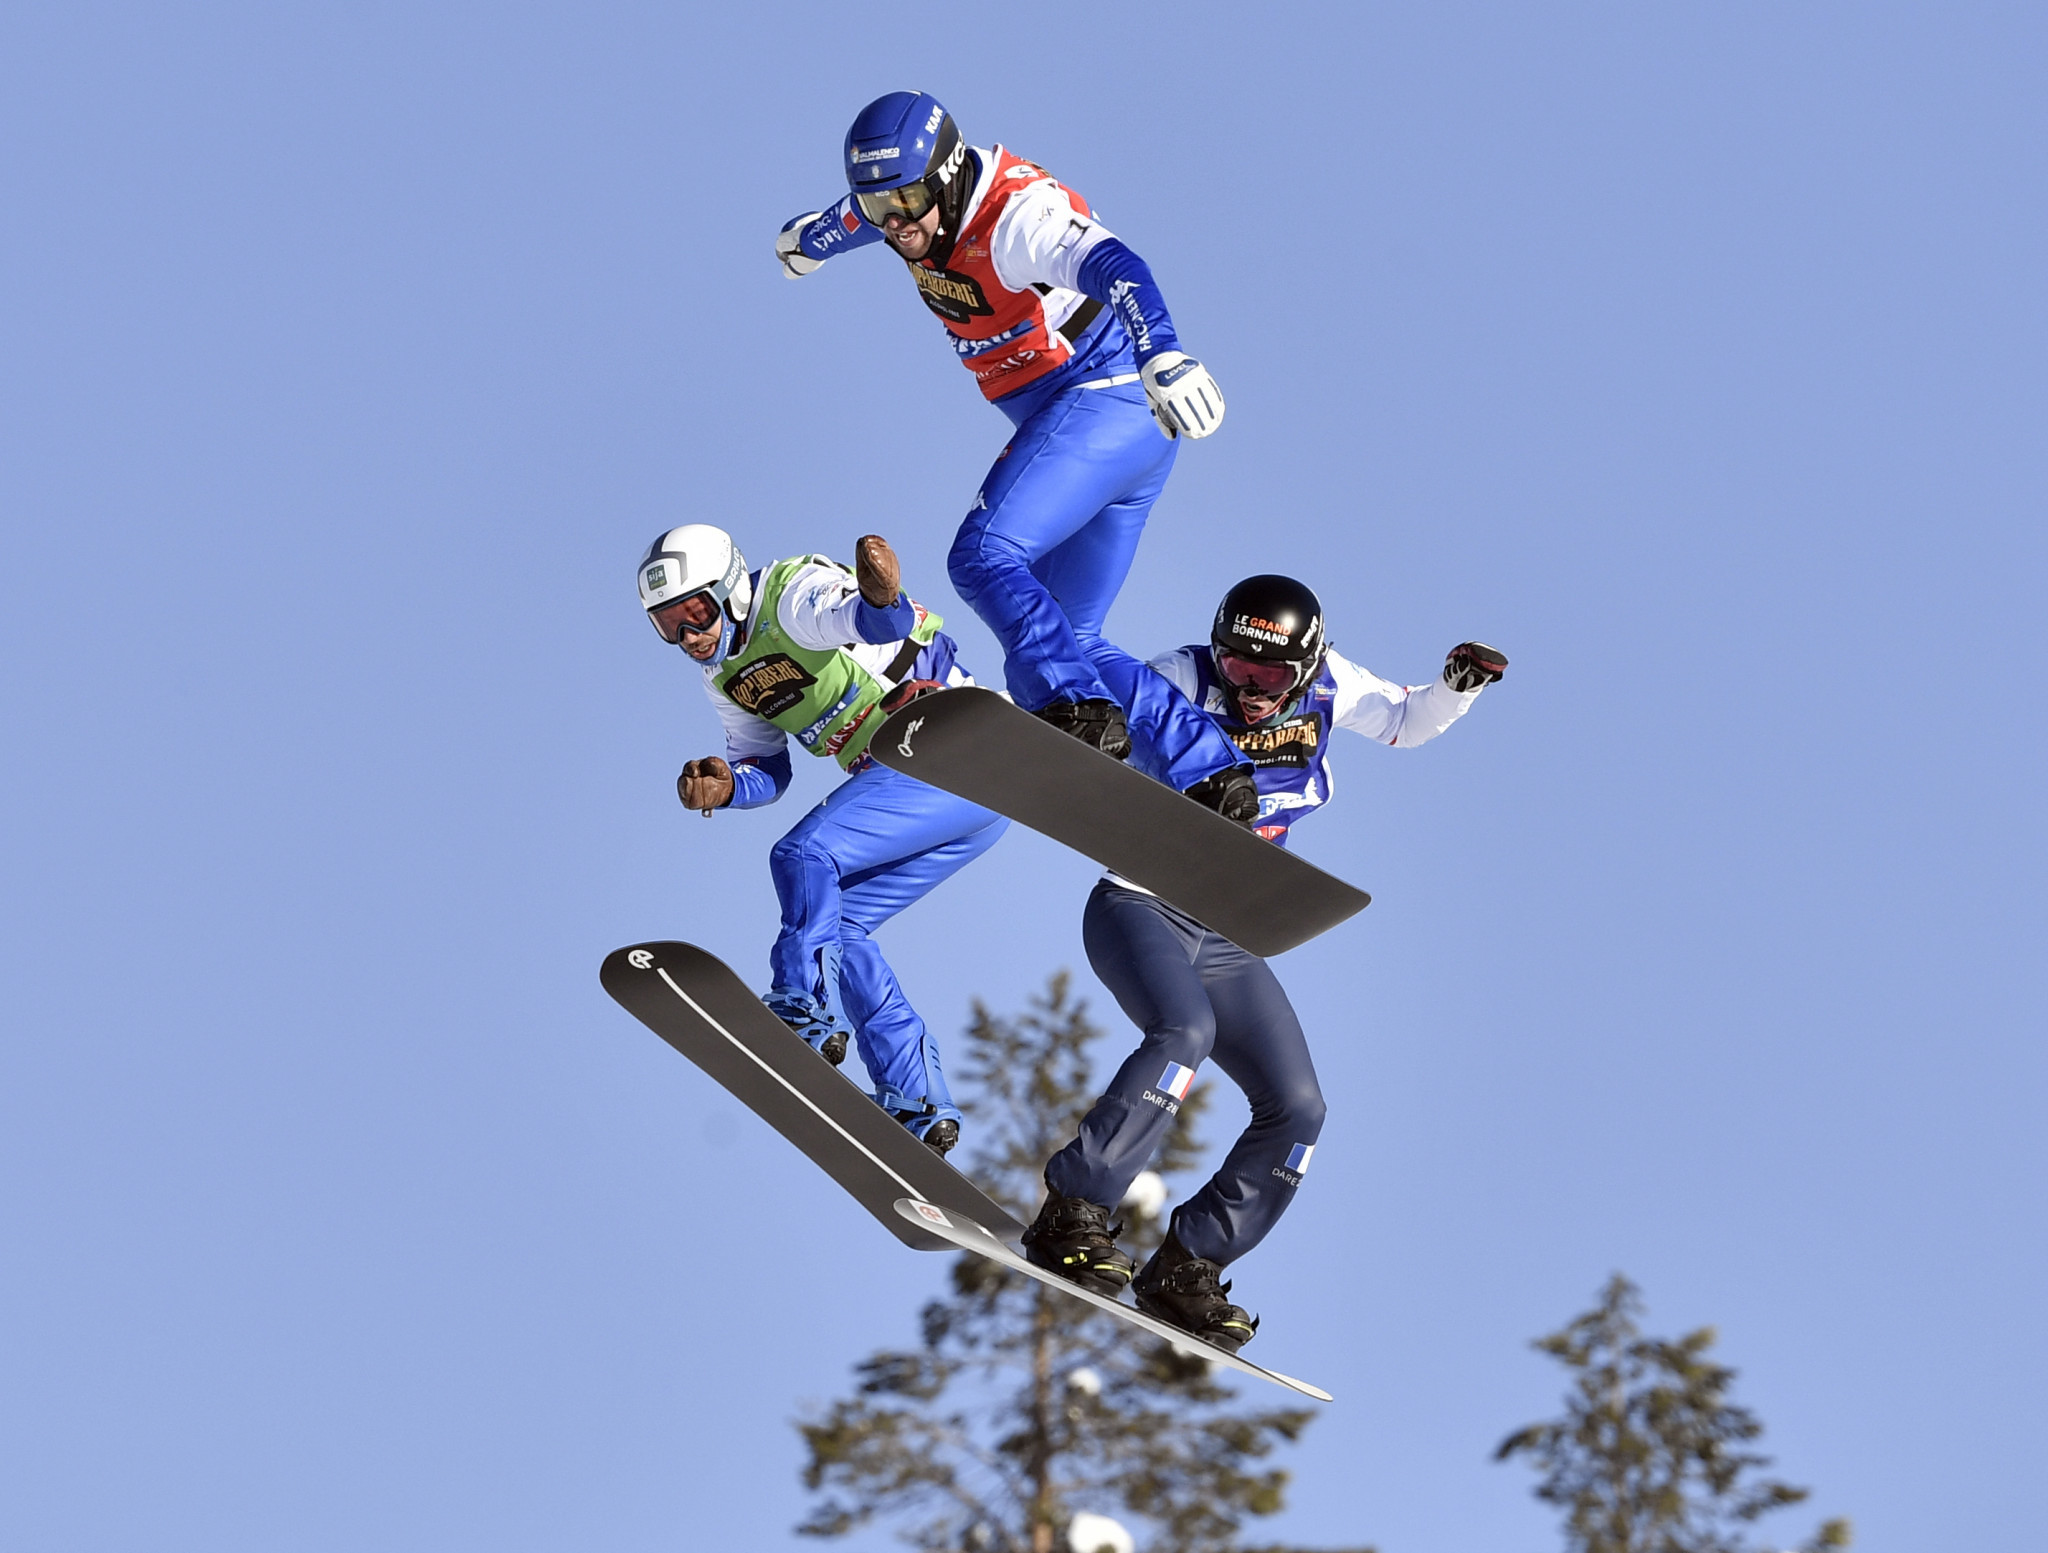 Bakuriani in Georgia is due to host back-to-back Snowboard Cross World Cup ©Getty Images